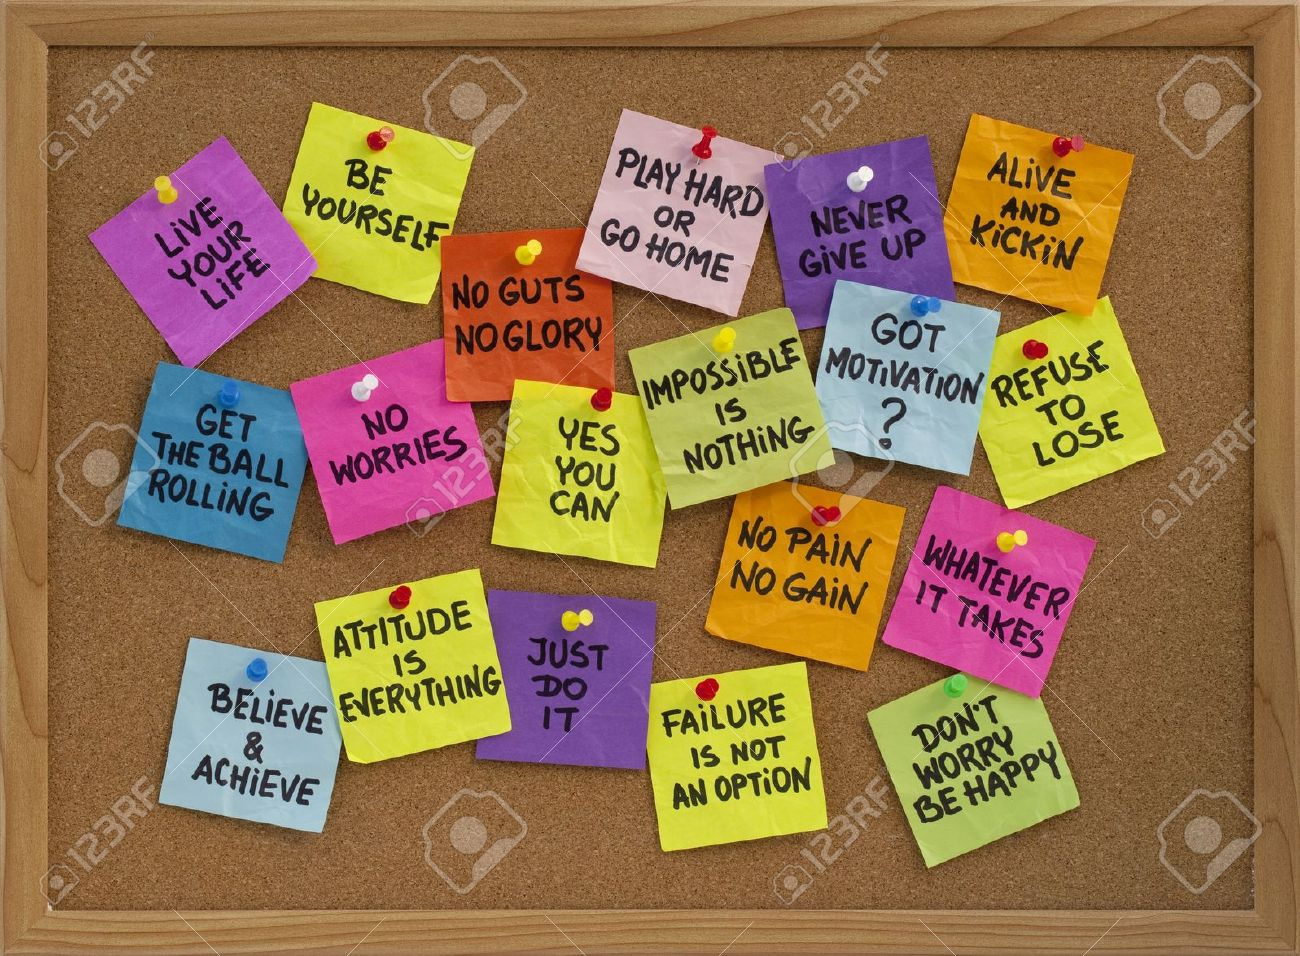 Motivational Slogans Motivational Slogans And Phrases  Colorful Reminder Notes With